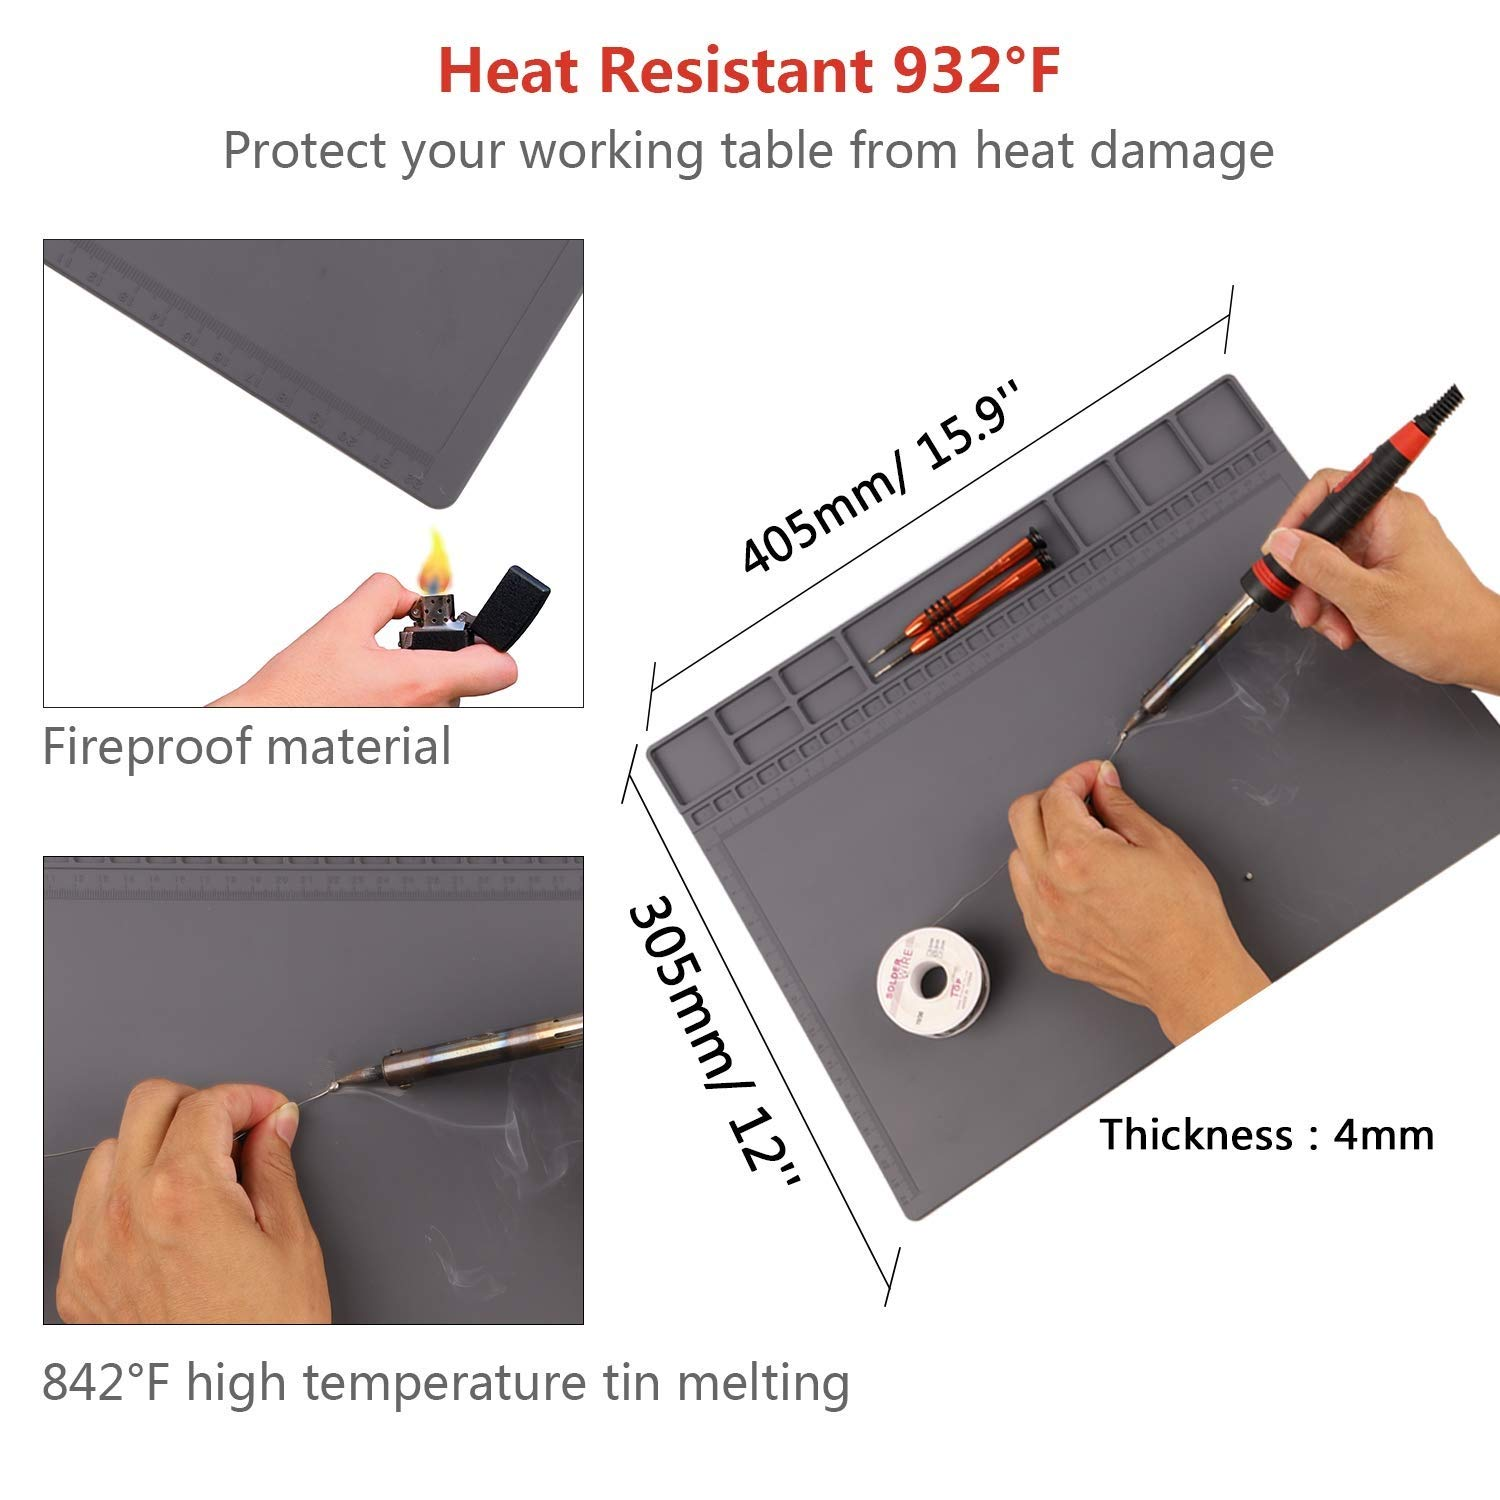 """Laptop Anti-static Mat ESD Safe for Electronic Contain Gift Anti-static Wristband 932/°F Heat Resistant 15.9/"""" x 12/"""" Grey Computer HPFIX Silicone Soldering Heat Insulation Repair Mat for Cellphone"""